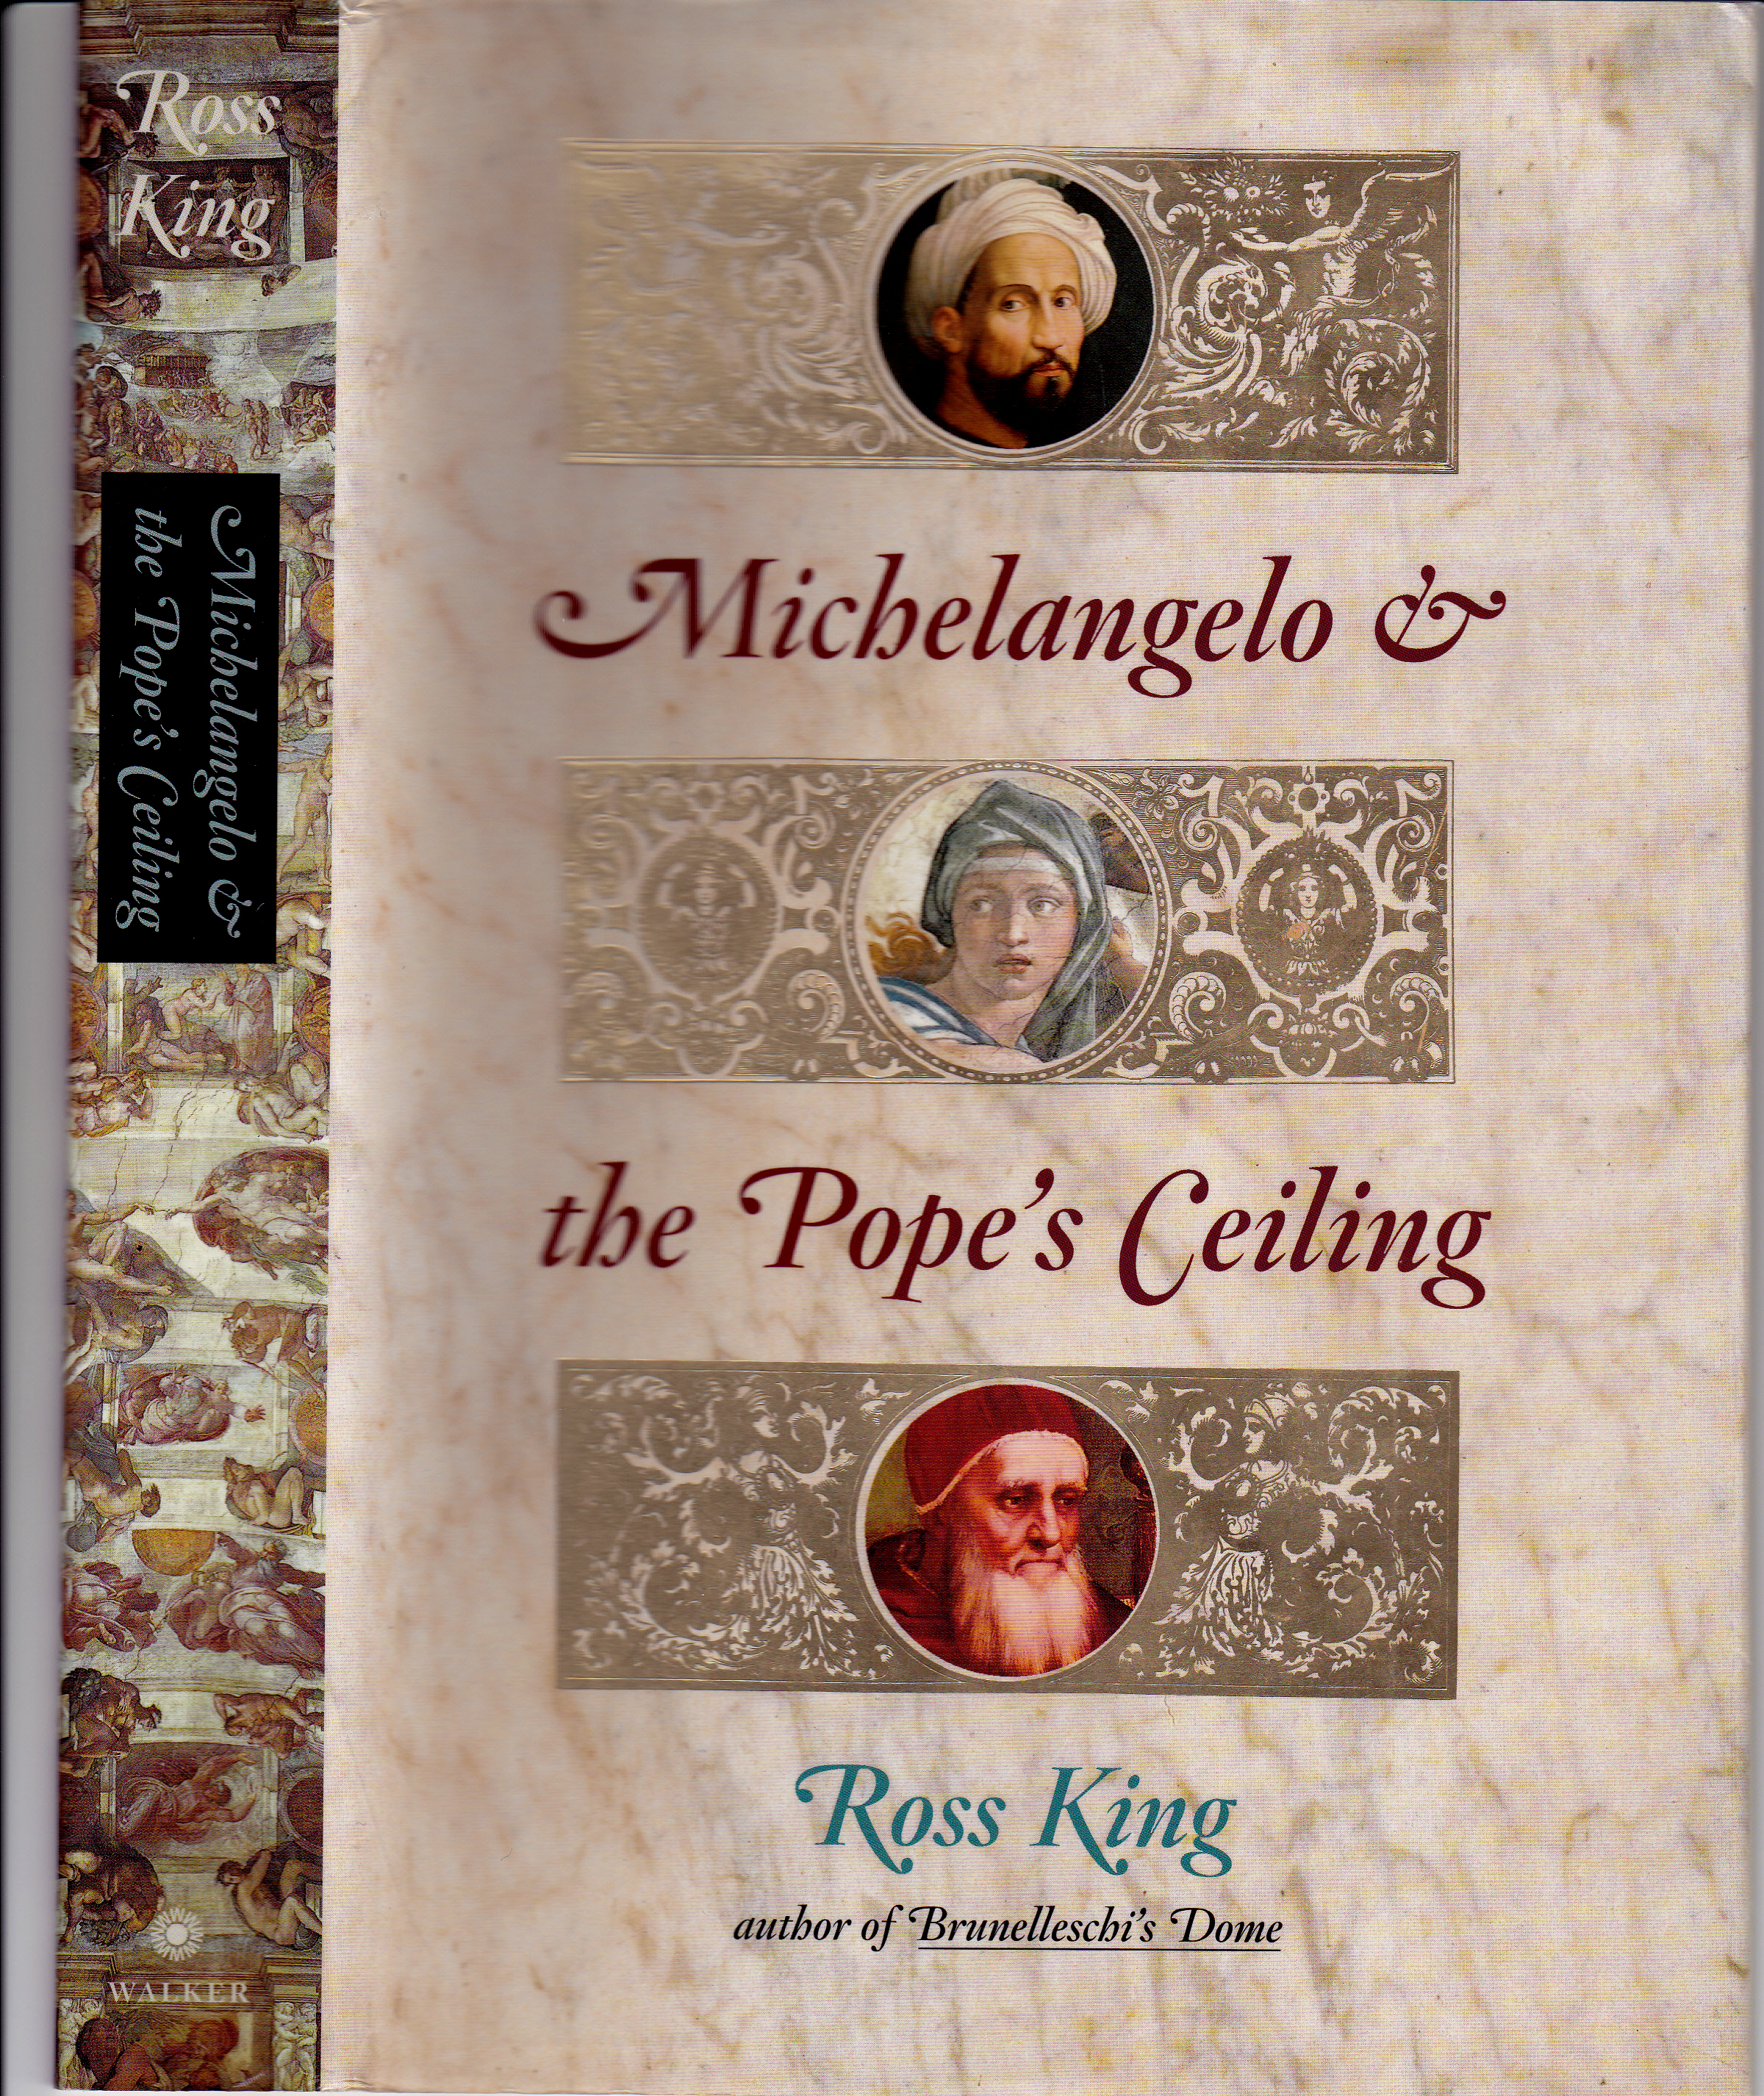 michelangelo and the popes ceiliing essay Read a review of michelangelo and the pope's ceiling by ross king at mostlyfictioncom great book for anyone who enjoys well-researched art history.